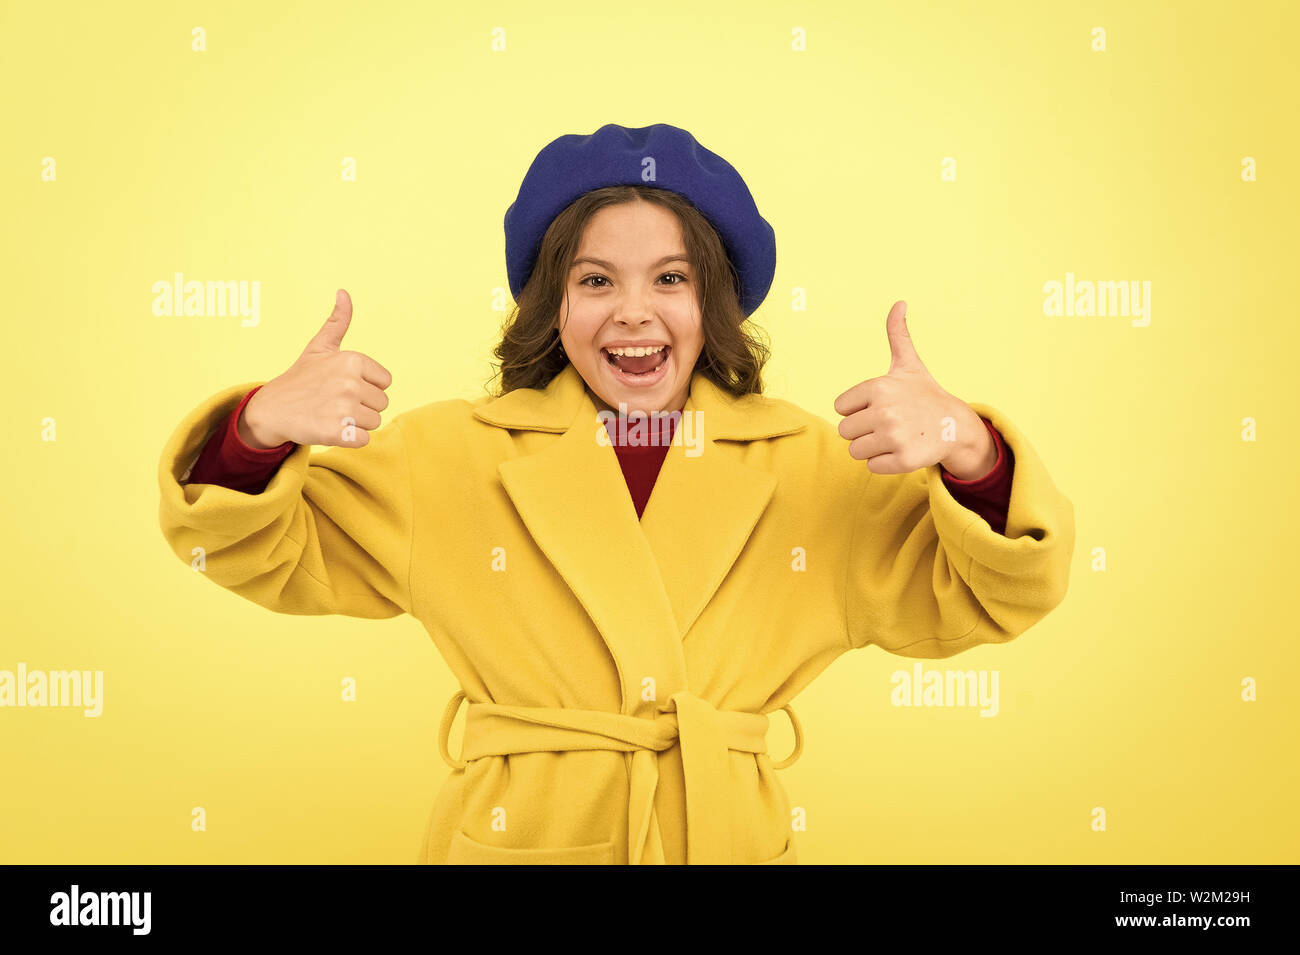 Child promoting something yellow background. Girl show thumbs up gesture. Advertising product. Look at this. Advertisement launching product. Advertisement concept. Place for ad advertisement. Stock Photo